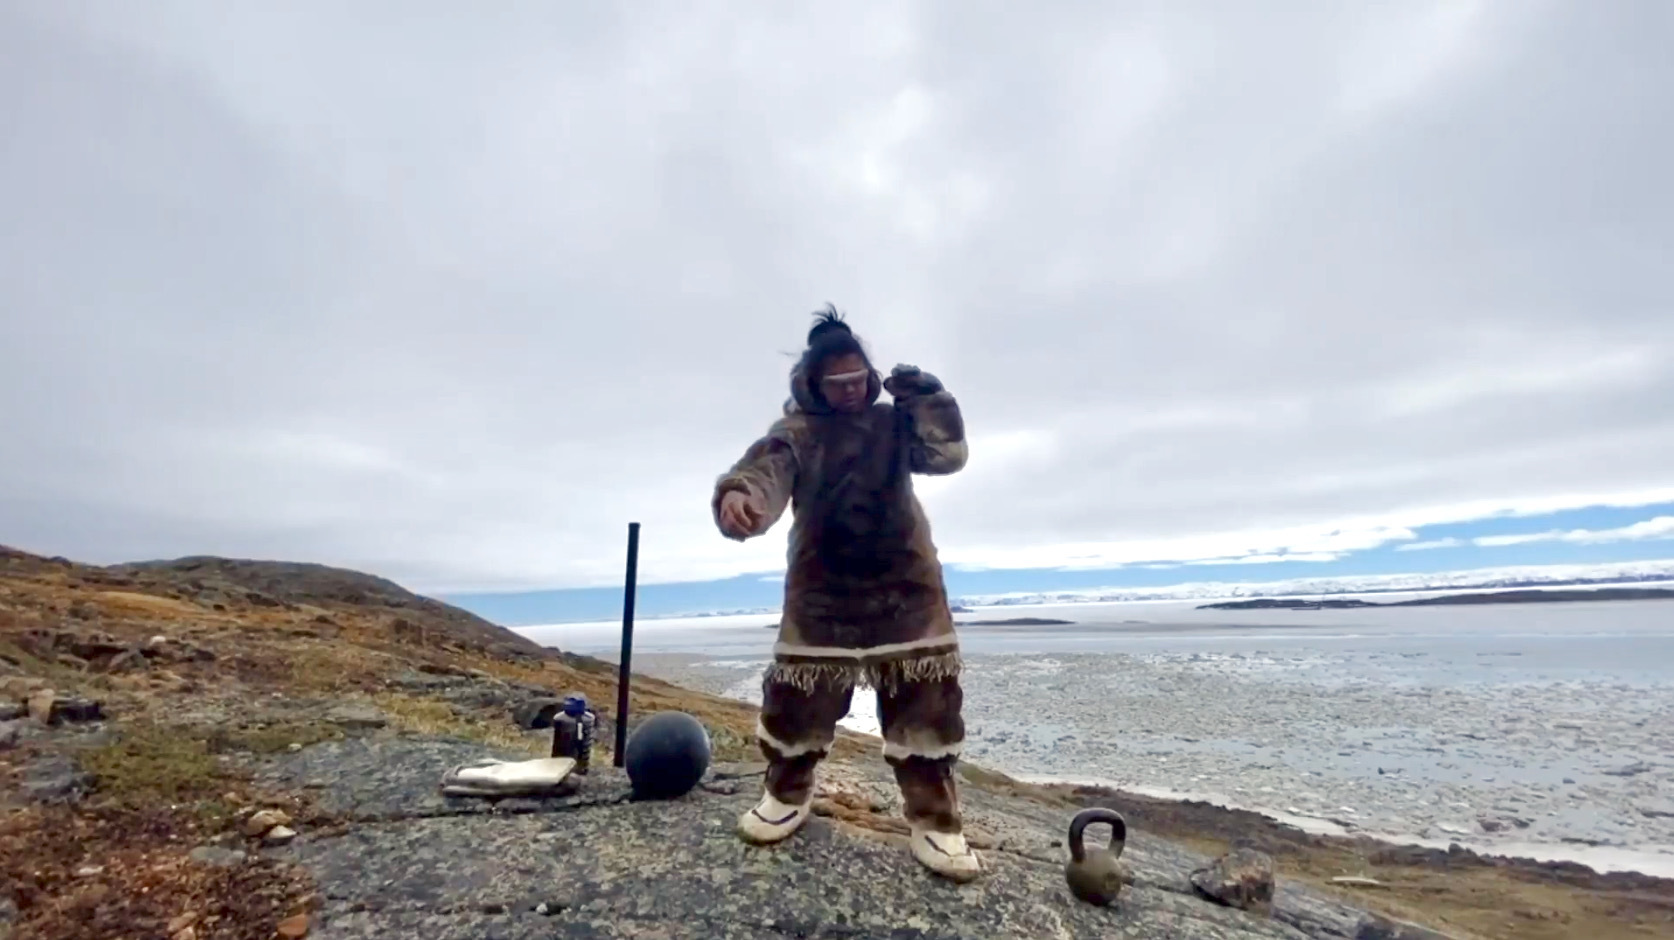 """Iqaluit's Joe Juralak added caribou-hide clothing to his workout routine over the weekend for National Indigenous History month, which is celebrated throughout June. Juralak, a self-described """"fitness freak,"""" regularly posts workout videos on Facebook and on Instagram, where he goes by @inukfit. He says exercising in the traditional clothing was hot but brought him happiness, and he hopes to come up with new ways to keep his workouts interesting in the coming weeks. (Photo provided by Joe Juralak)"""